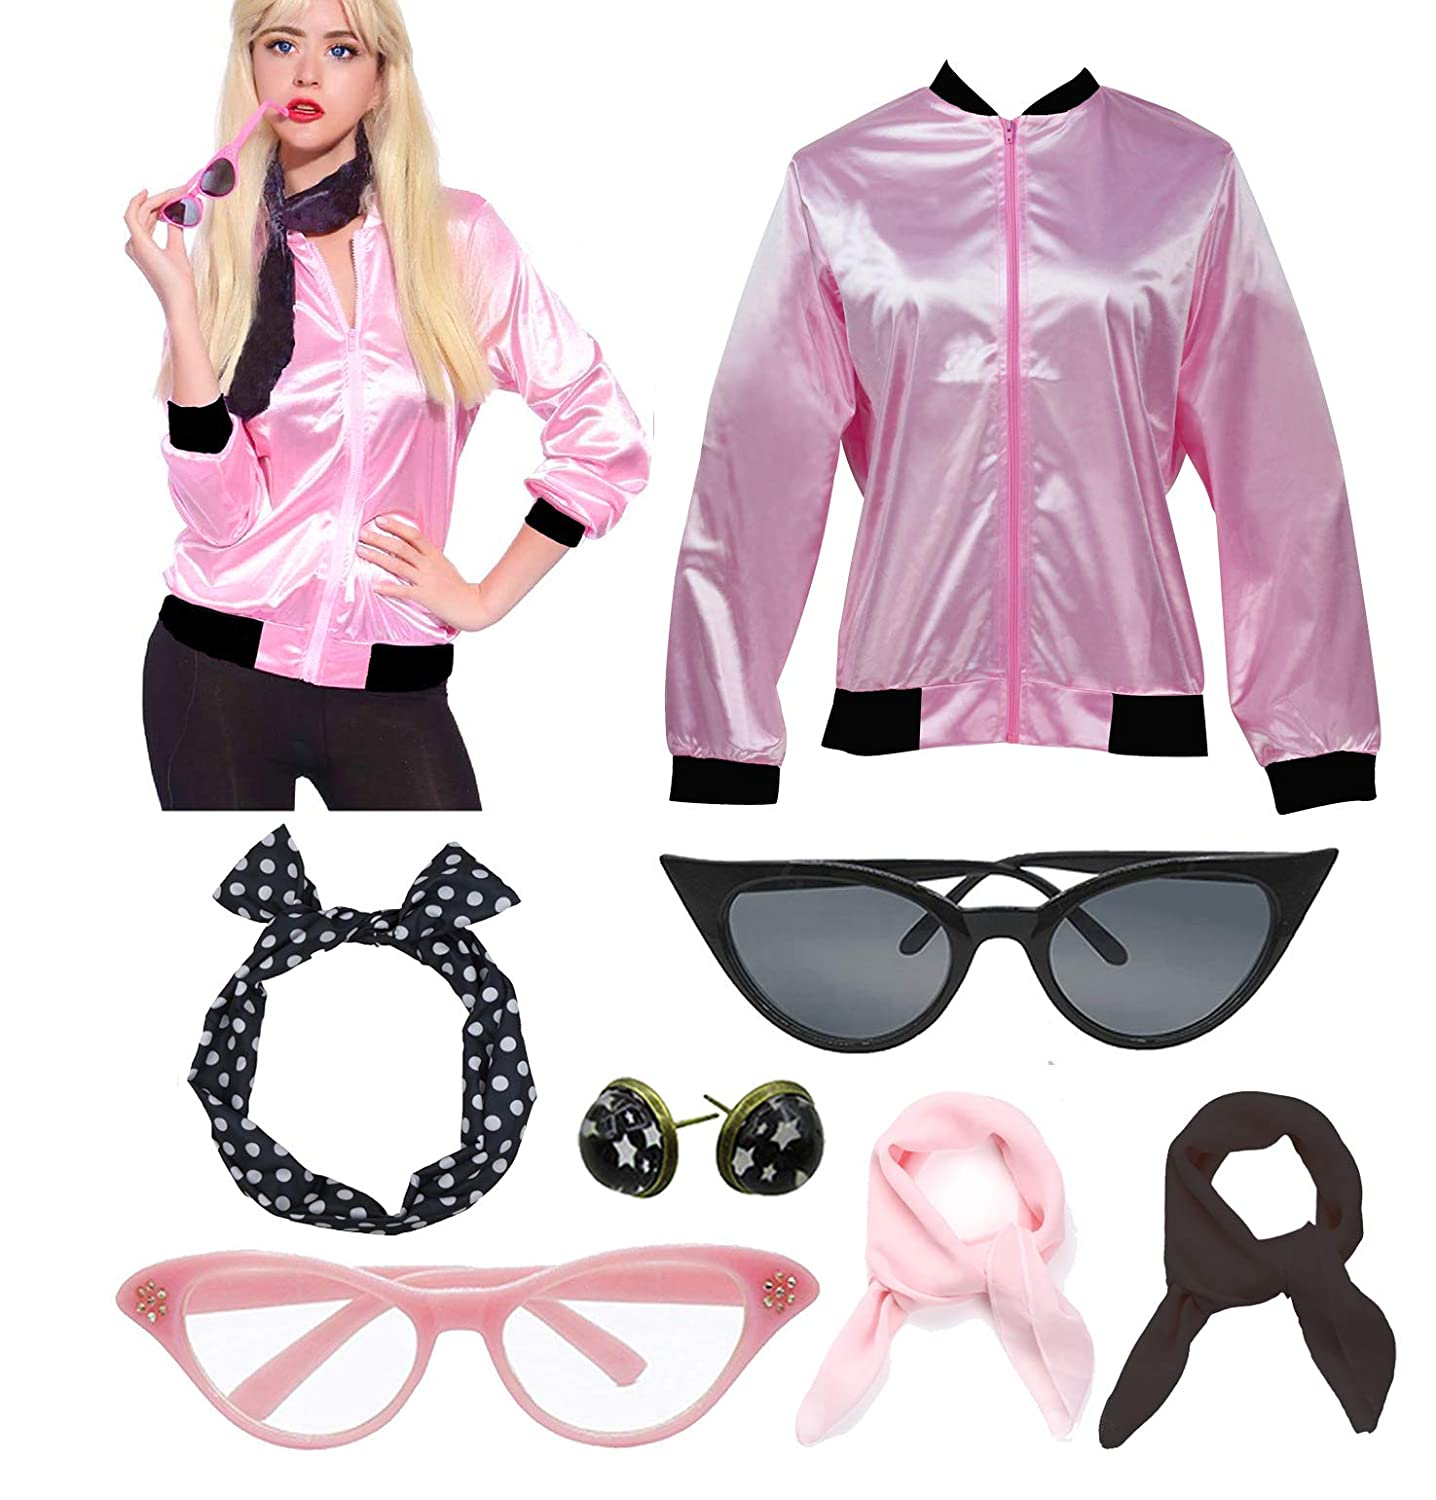 50'S Costume Party Lady Jacket with Scarf 716h4gU0q8L